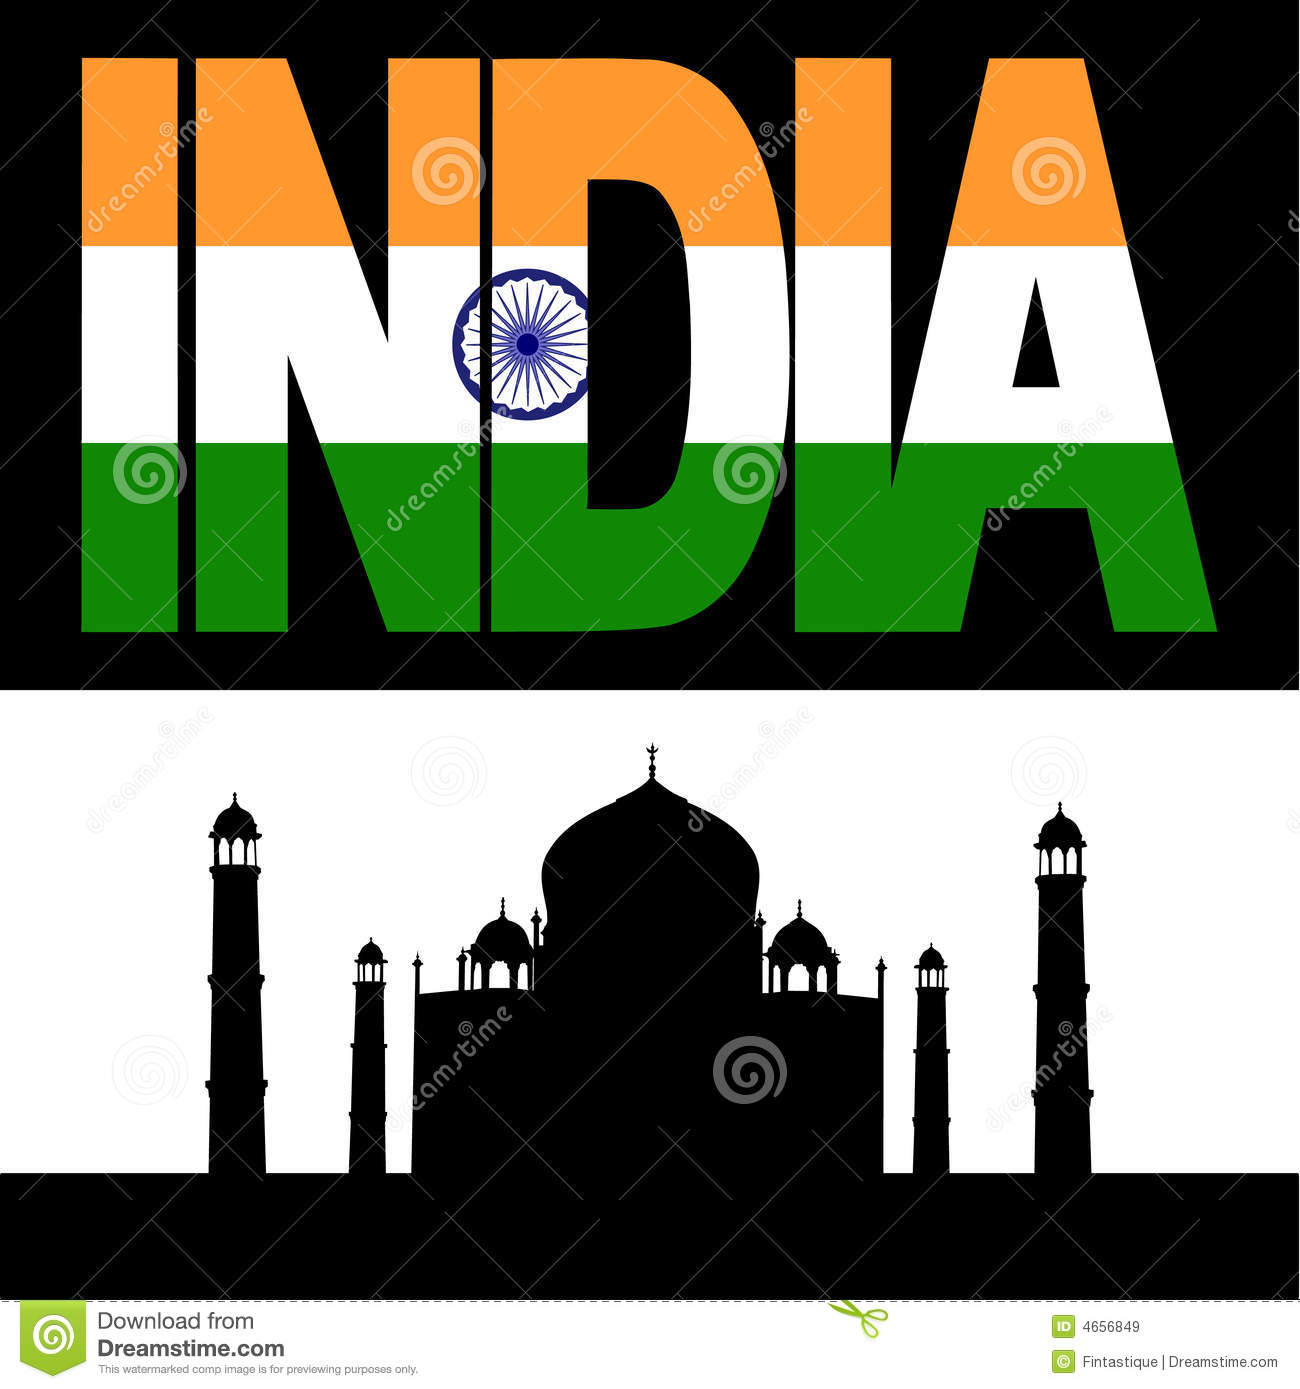 Indian Flag 3d Wallpaper Download Taj Mahal And India Flag Text Royalty Free Stock Images